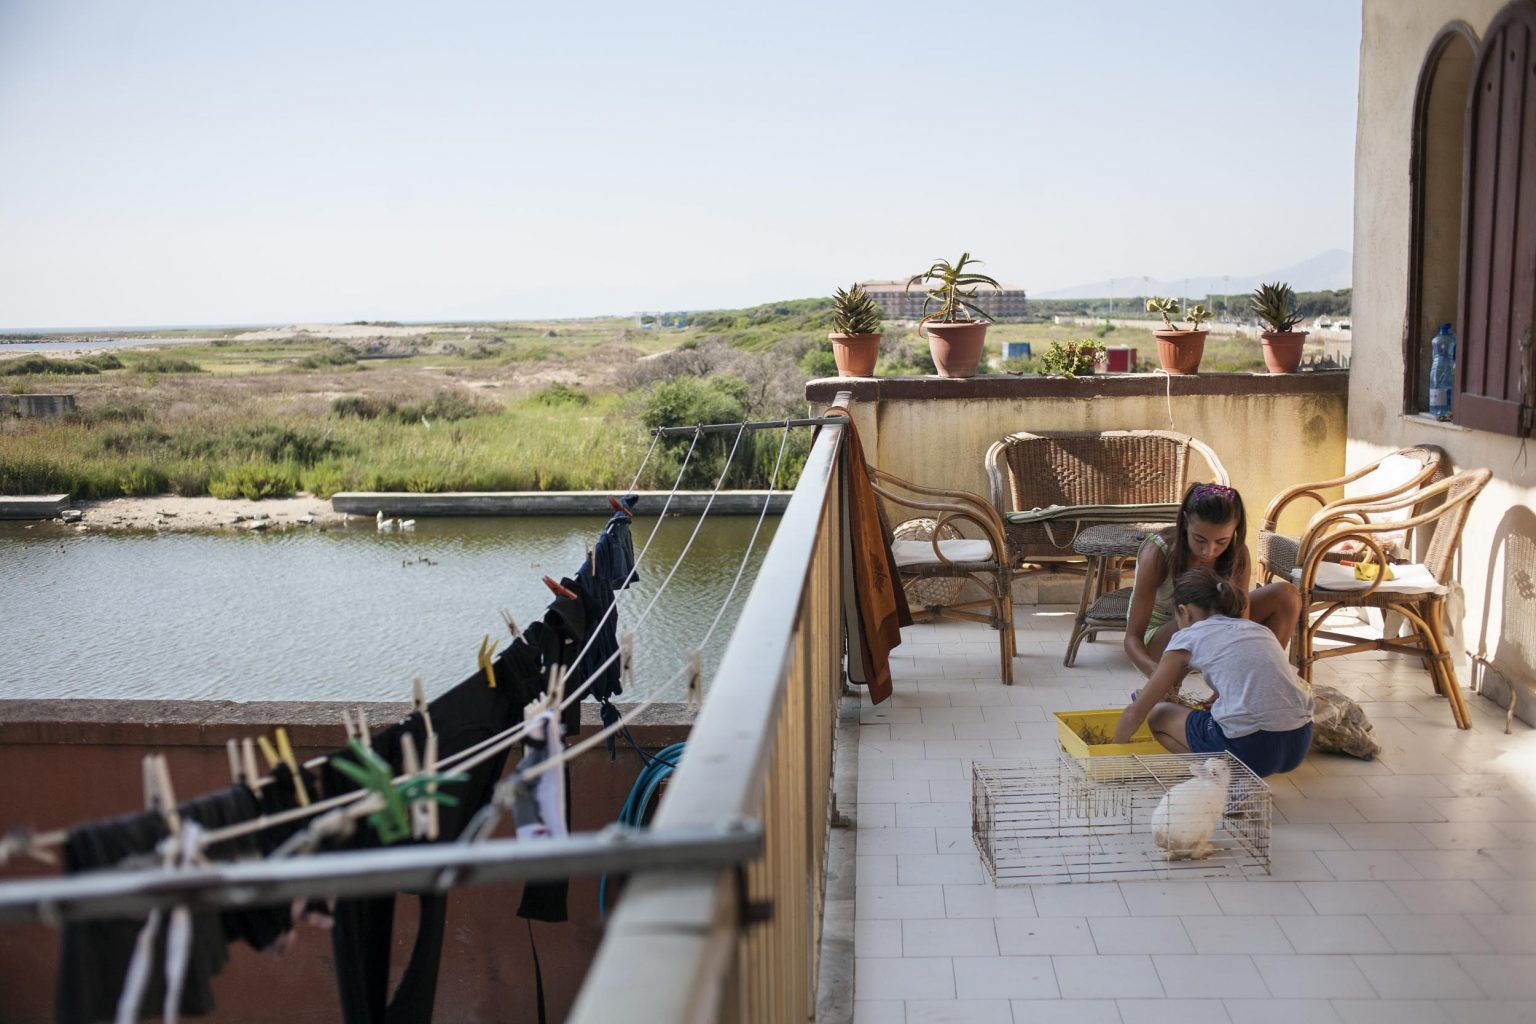 Alessandra and Federica are on their house terrace cleaning the rabbit's cage.